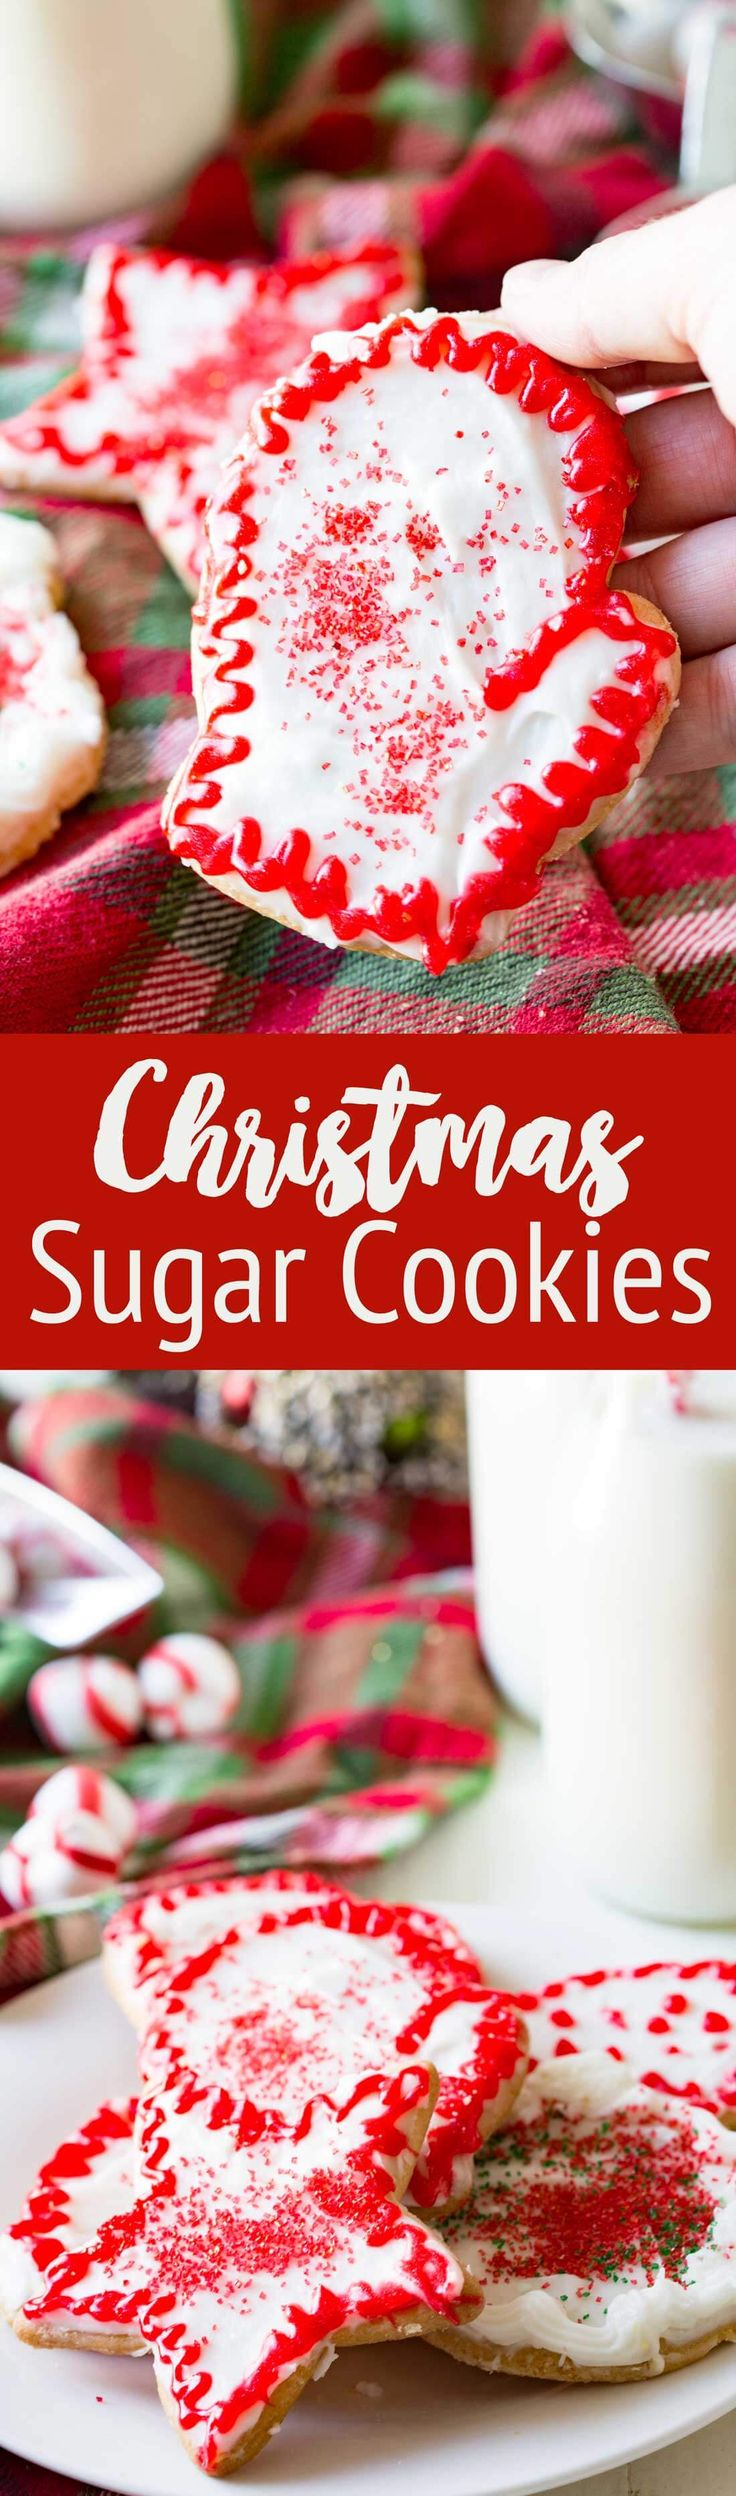 Christmas Sugar Cookies that are cut out cookies, topped with frosting, and excellent for decorating and eating. #sugarcookies #christmas #christmascookies #cookieexchange #cookies